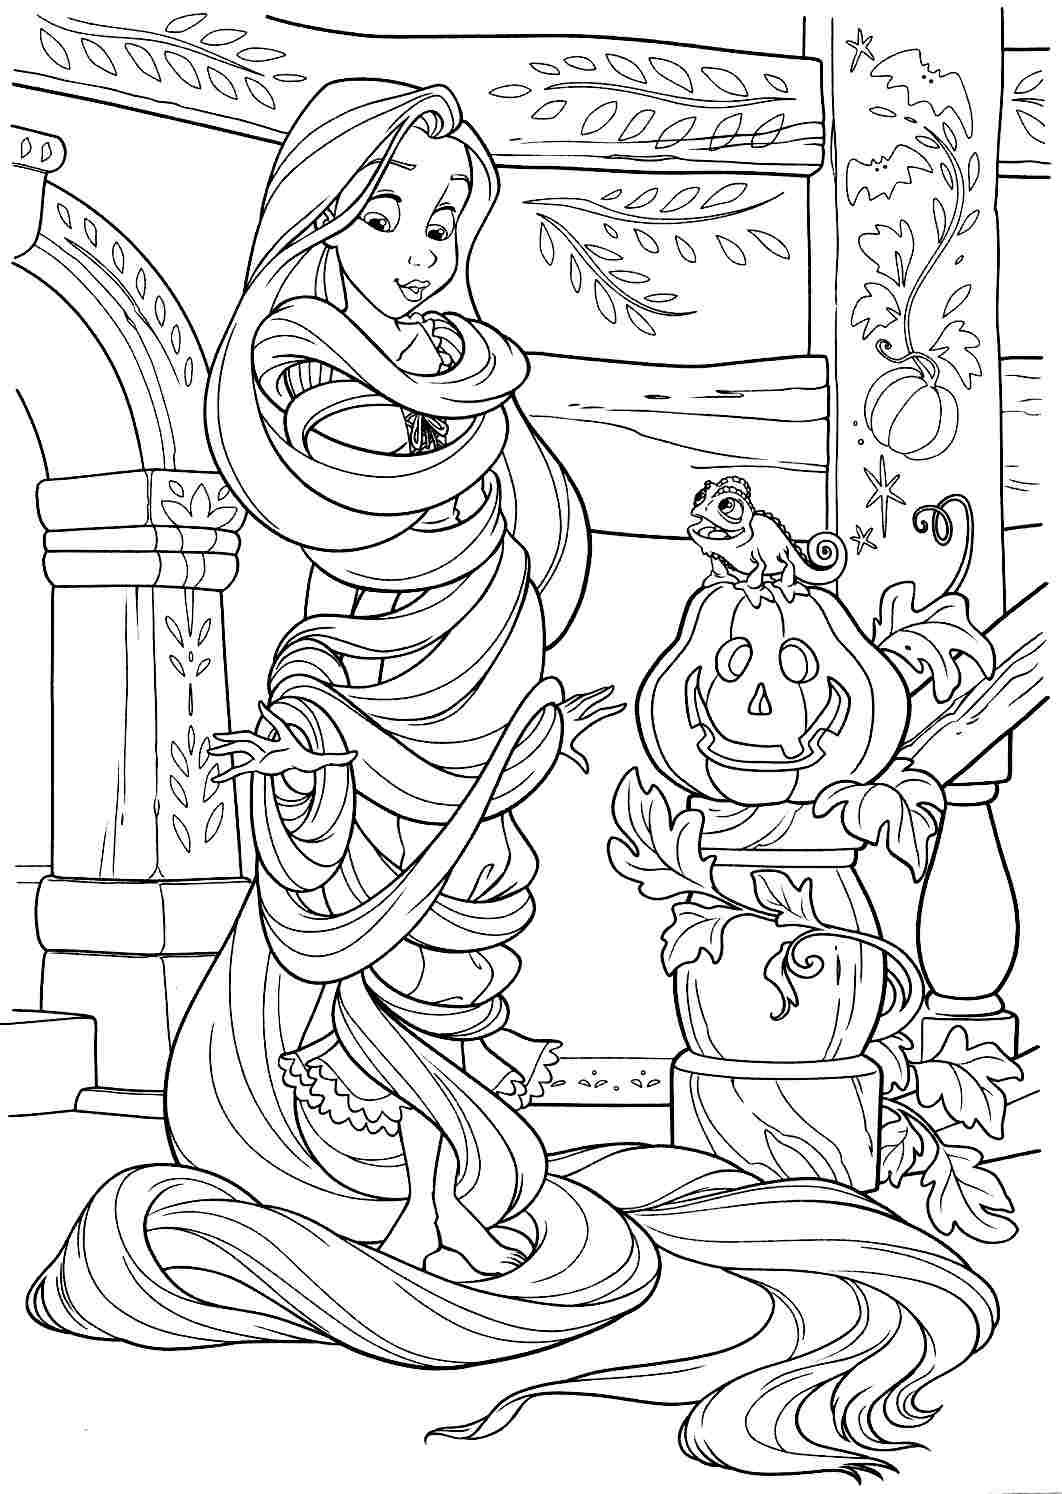 tangled coloring picture coloring pages pinterest color